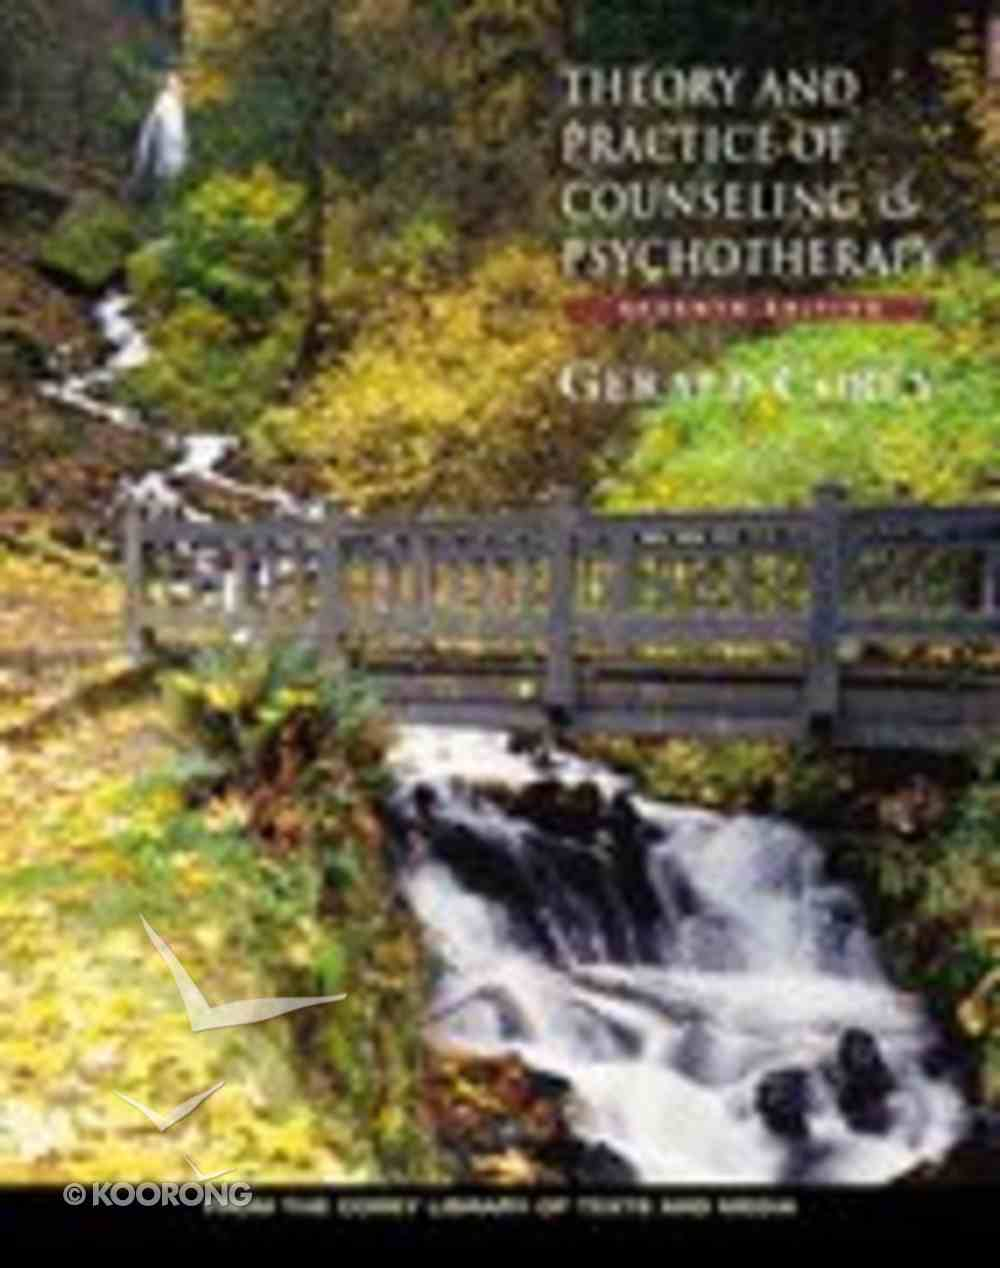 Theory and Practice of Counseling and Psychotherapy (7th Edition) Hardback